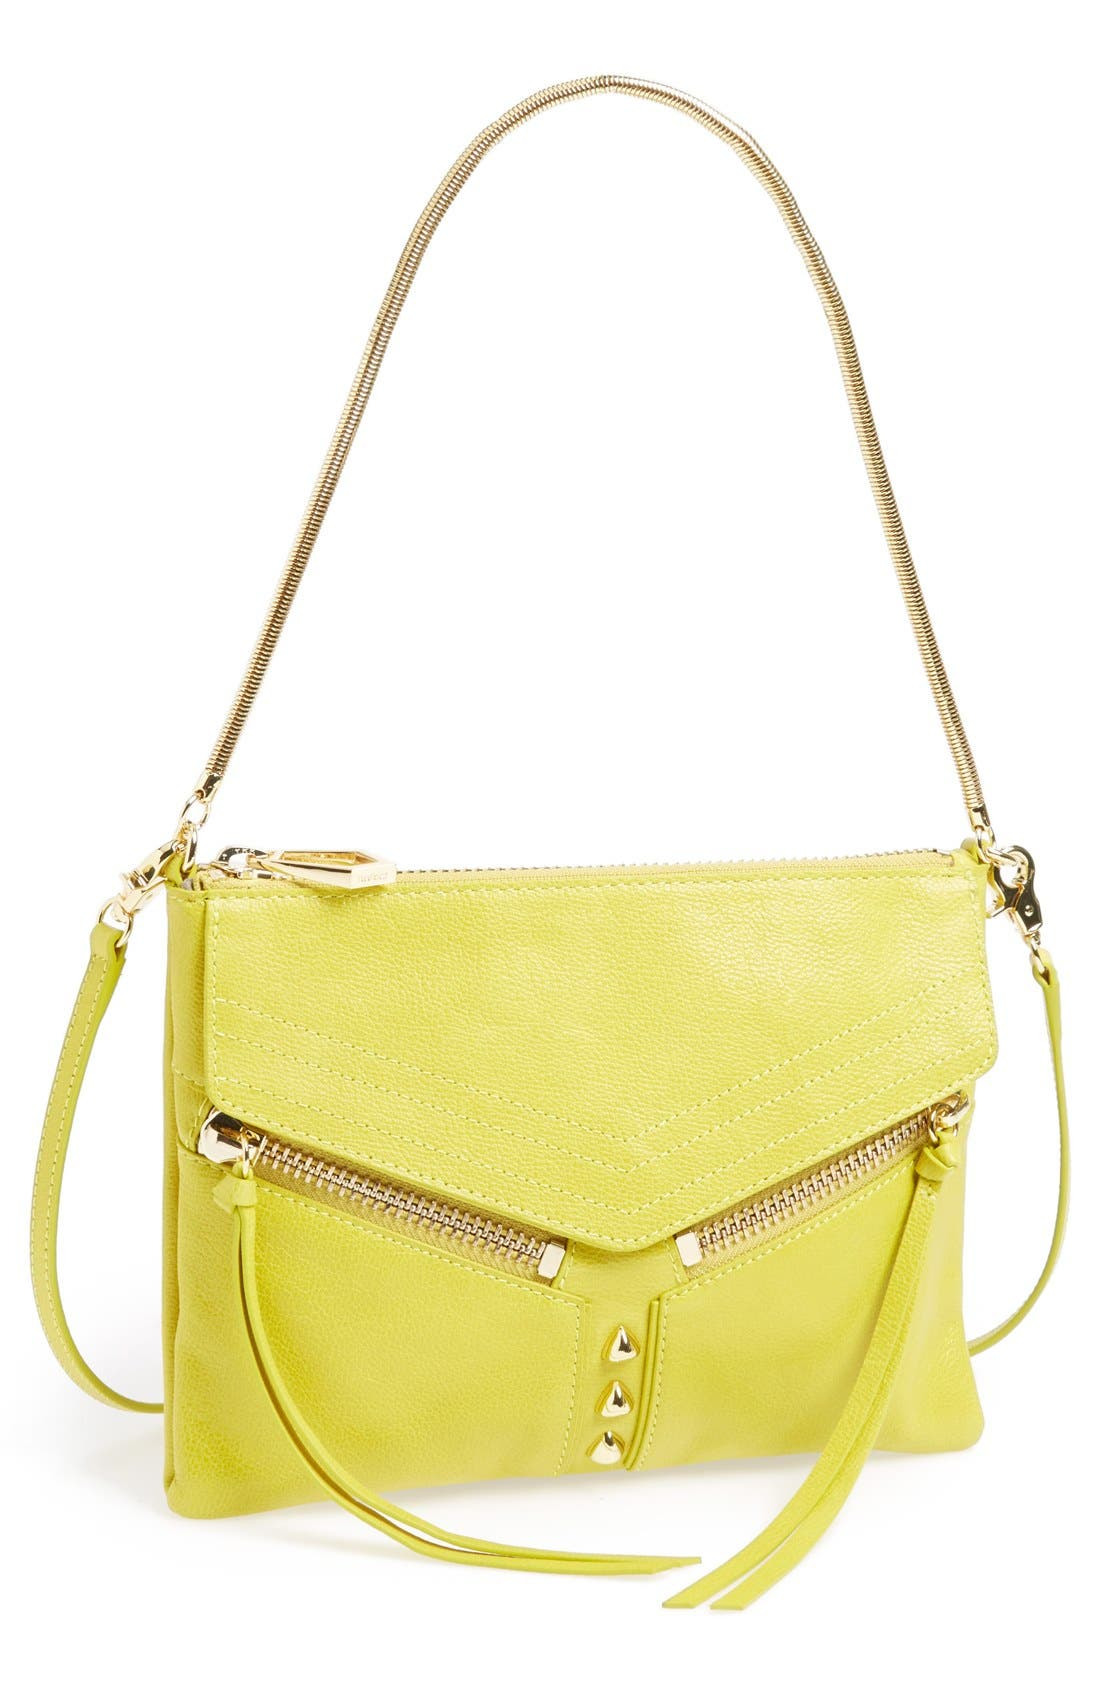 Alternate Image 1 Selected - Botkier 'Legacy - Mini' Convertible Crossbody Clutch